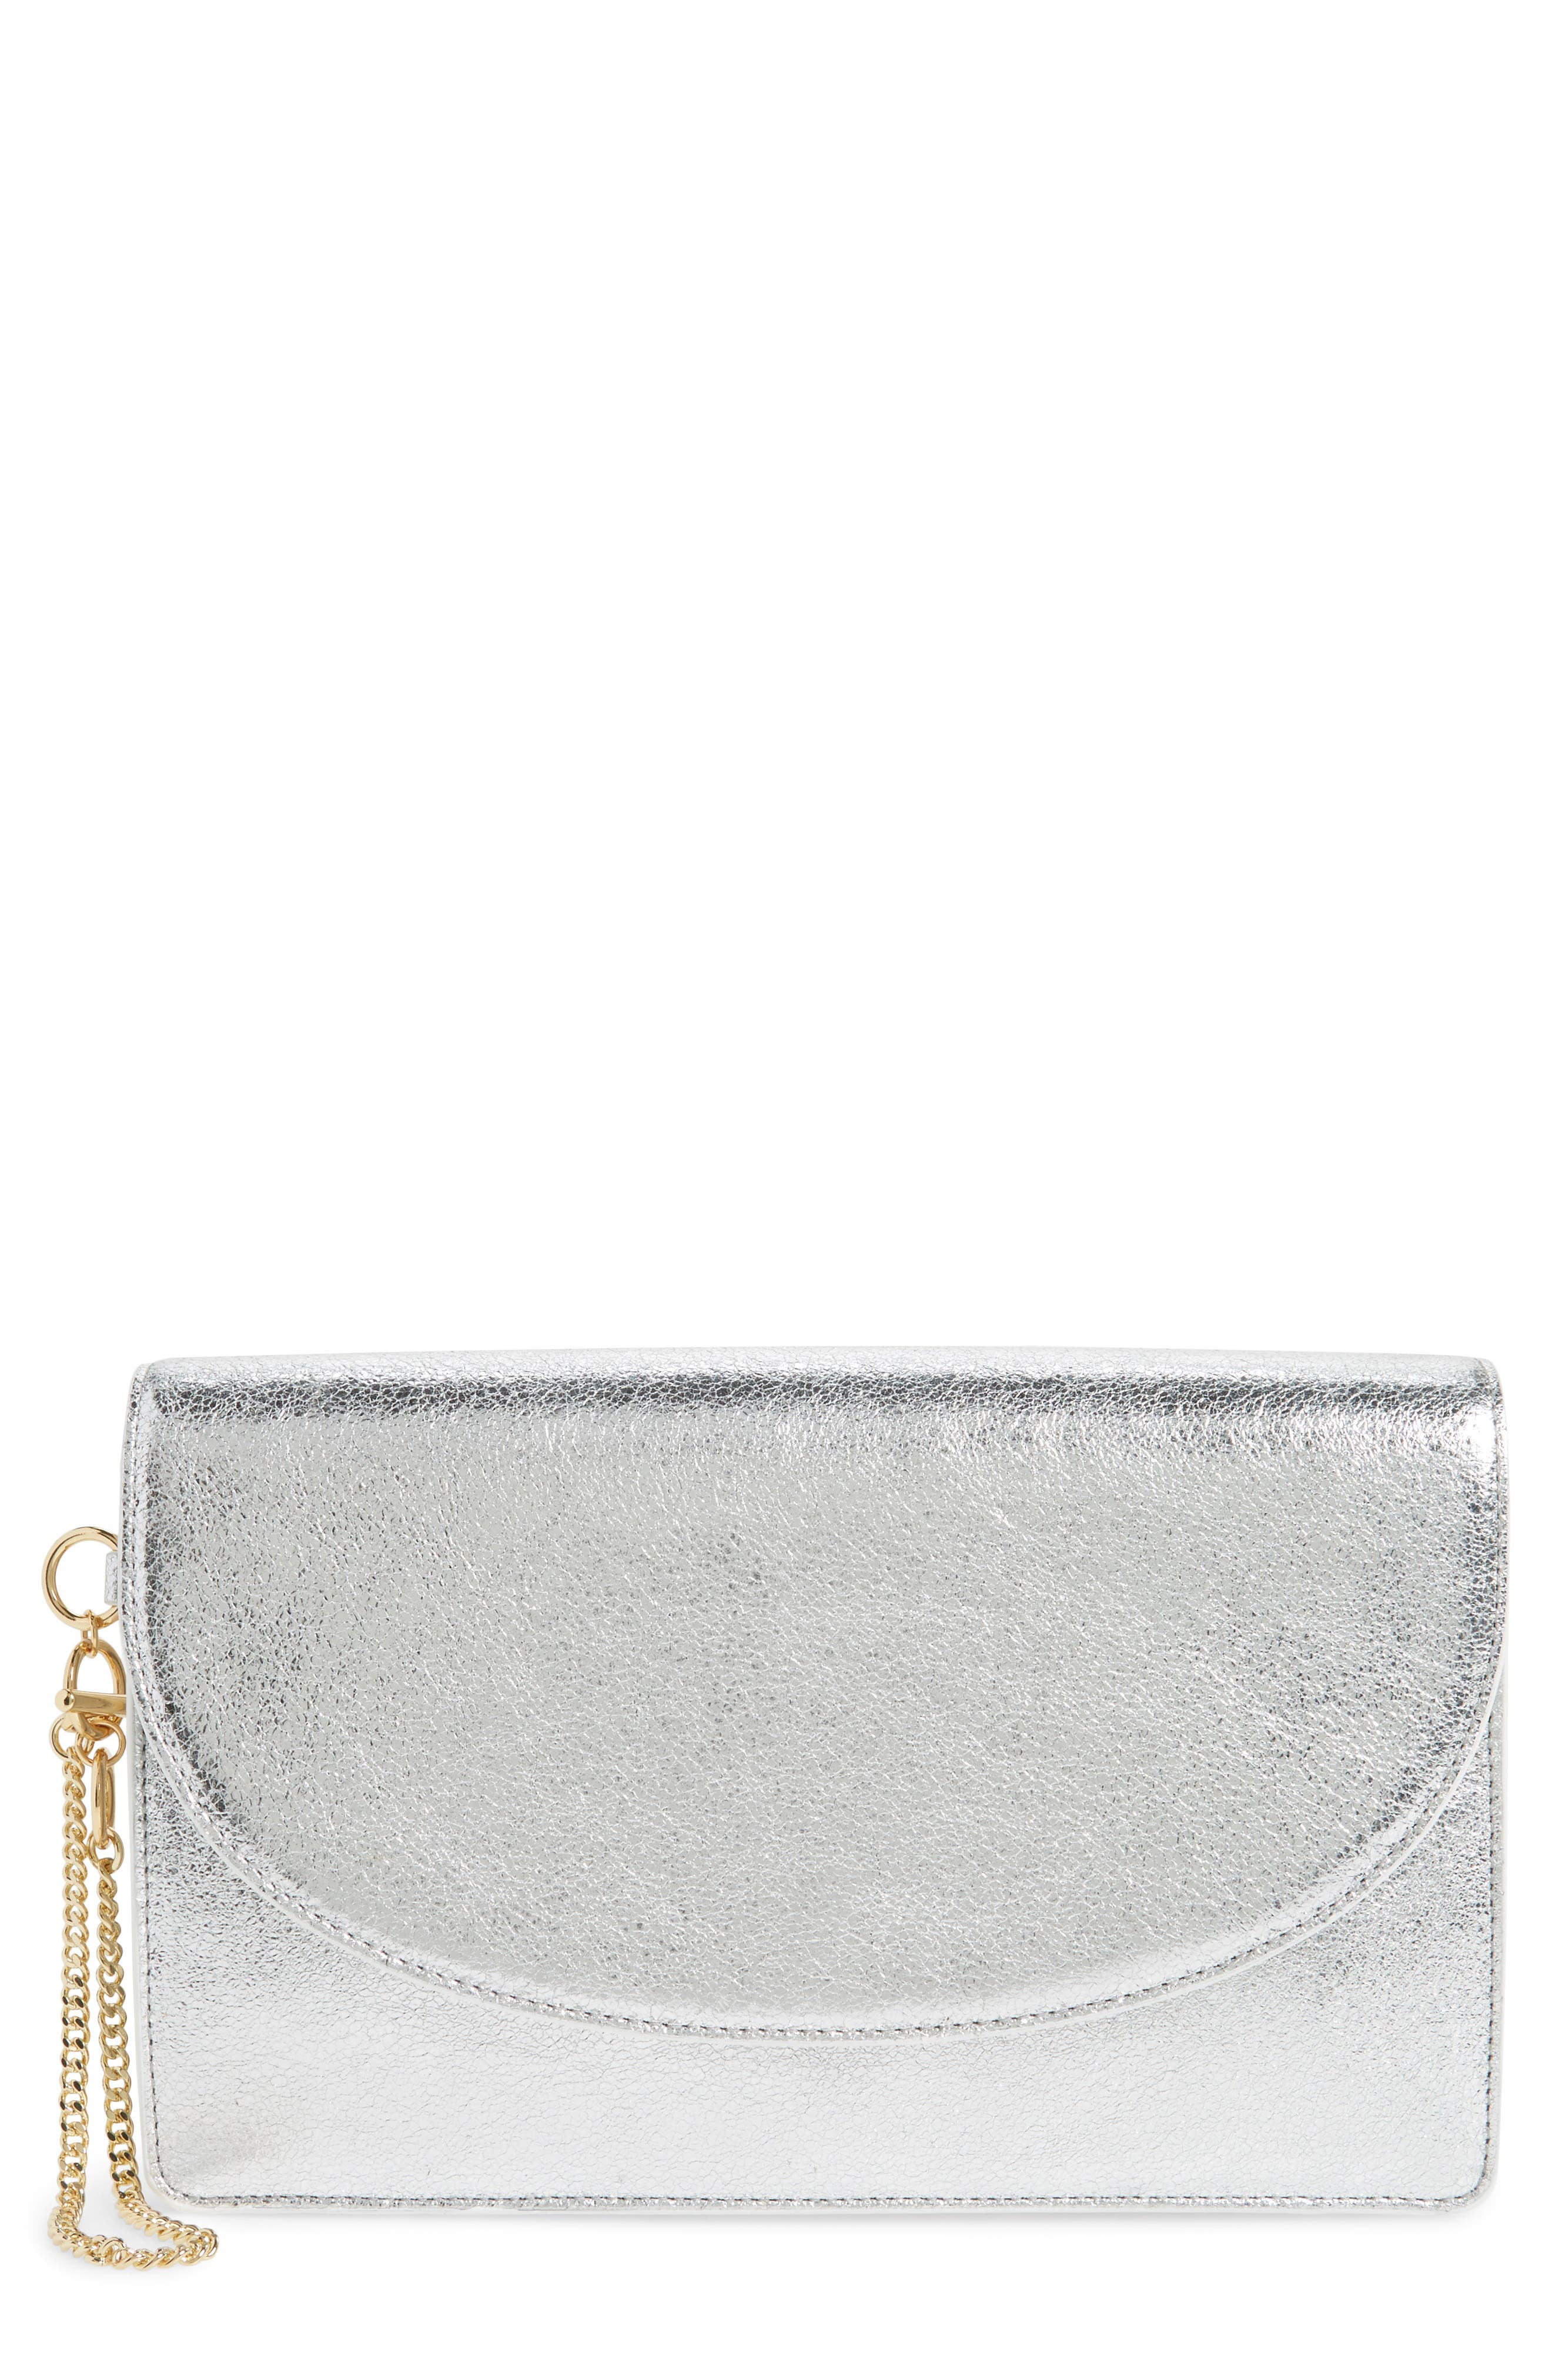 Saddle Leather Clutch,                         Main,                         color, Silver